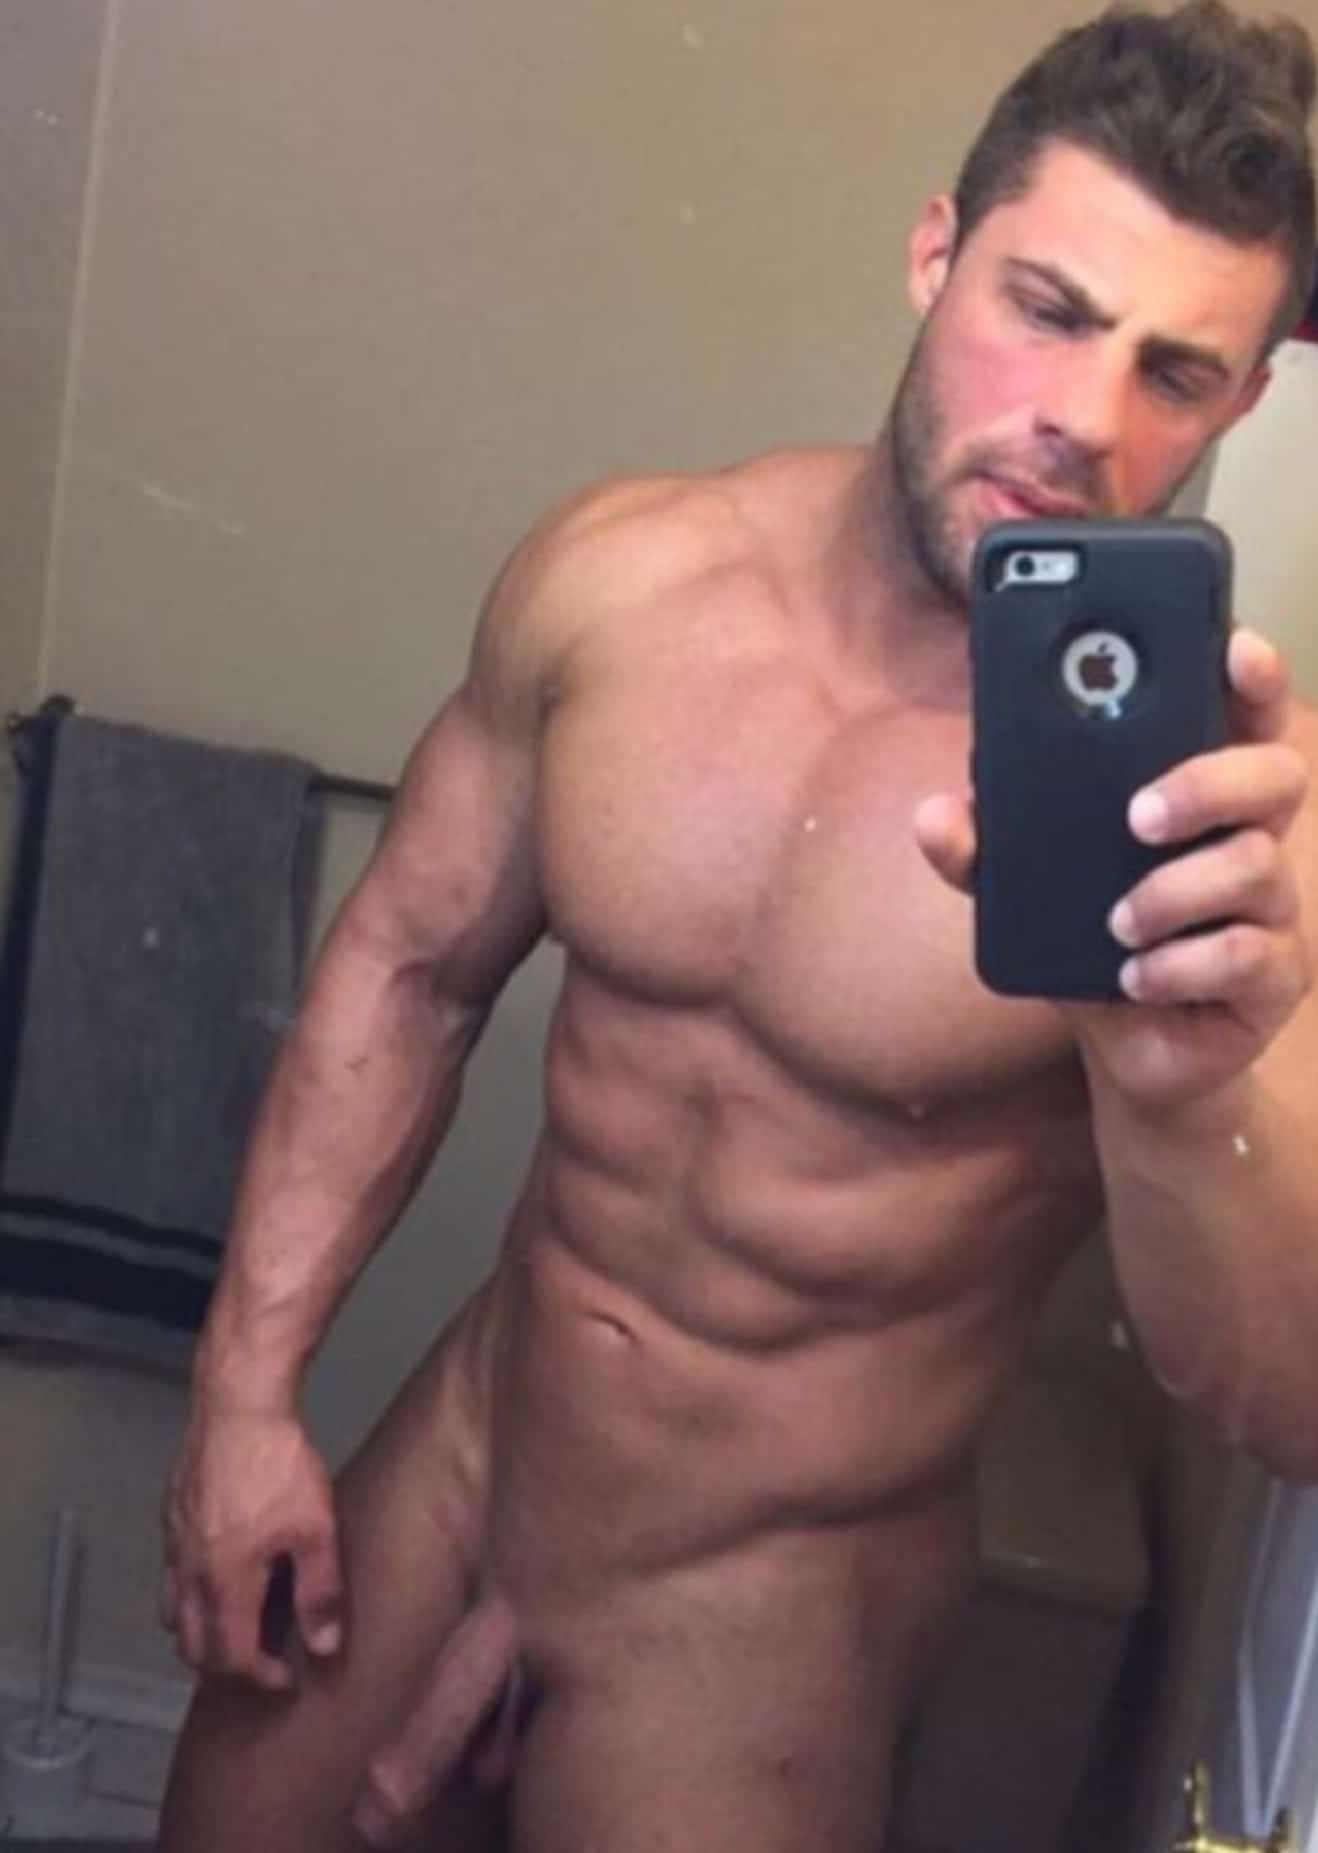 Hot Nude Muscle Man With A Pretty Penis - Cock Picture Blog